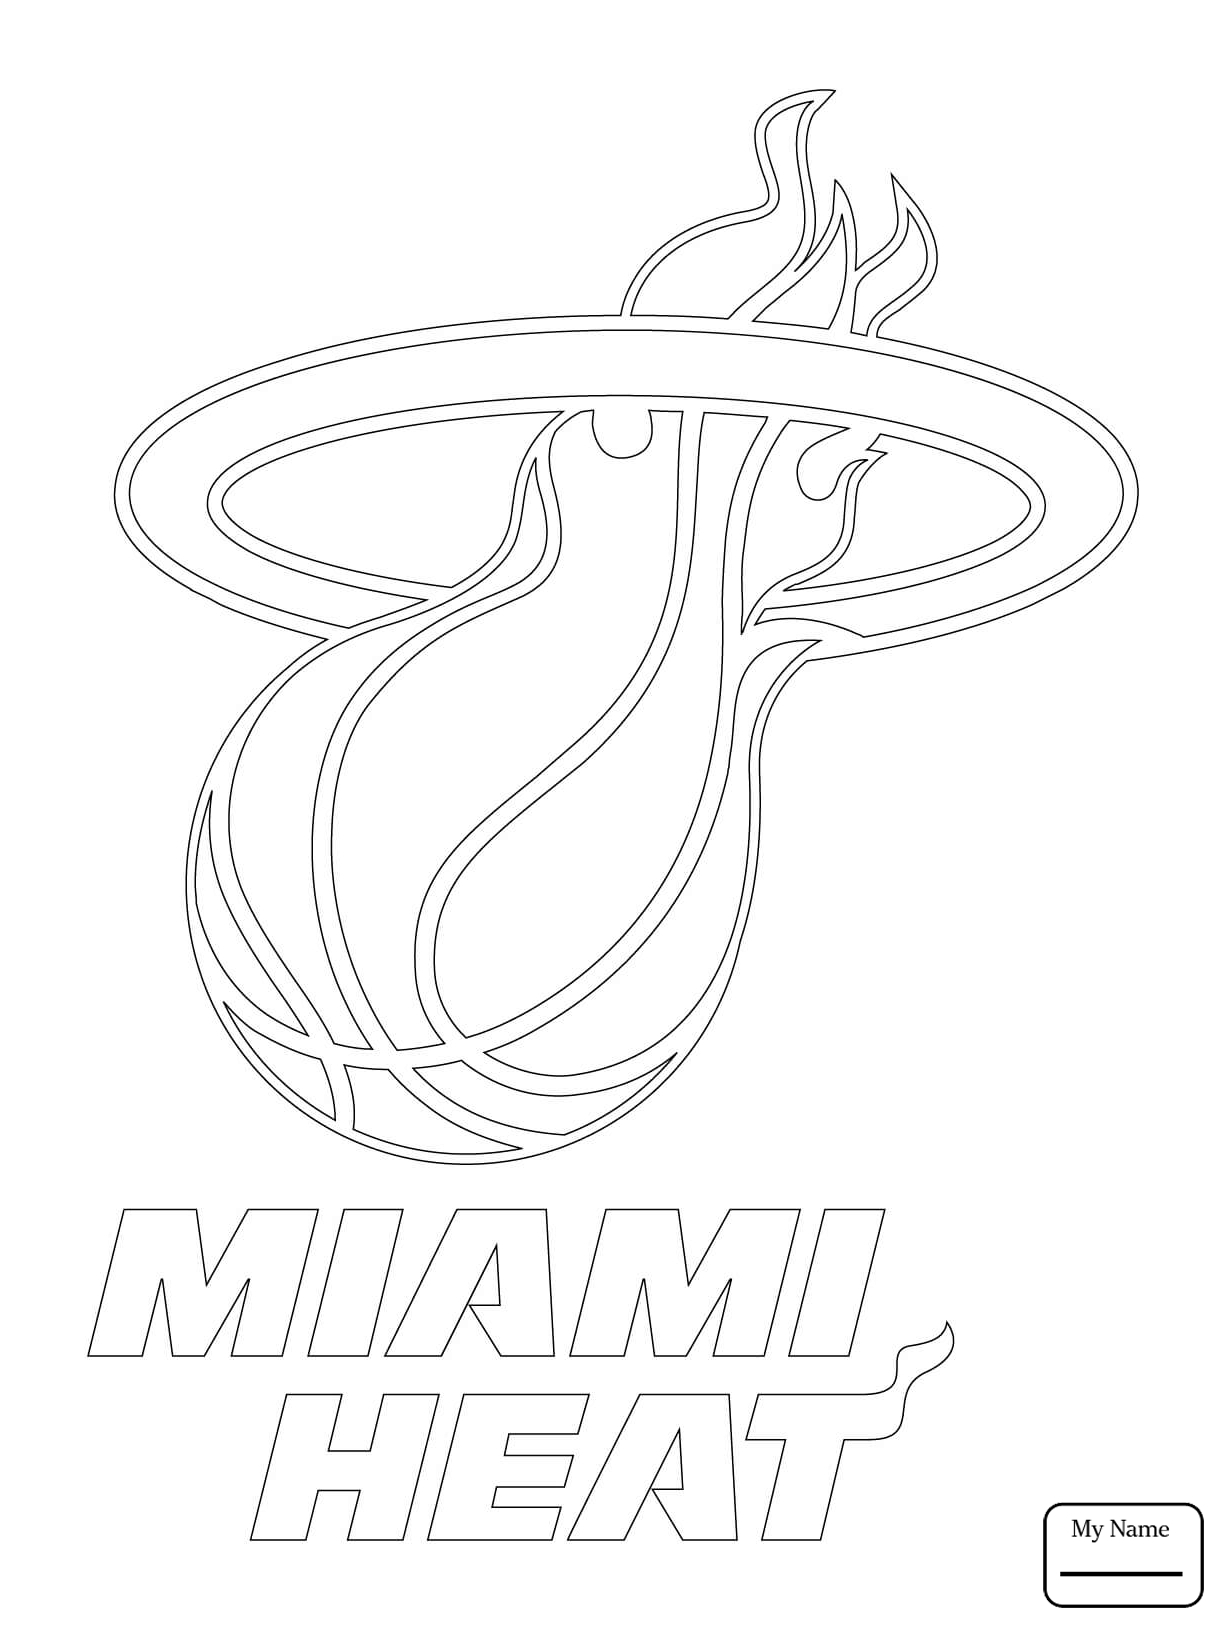 lakers logo coloring pages - lakers logo drawing at free for personal